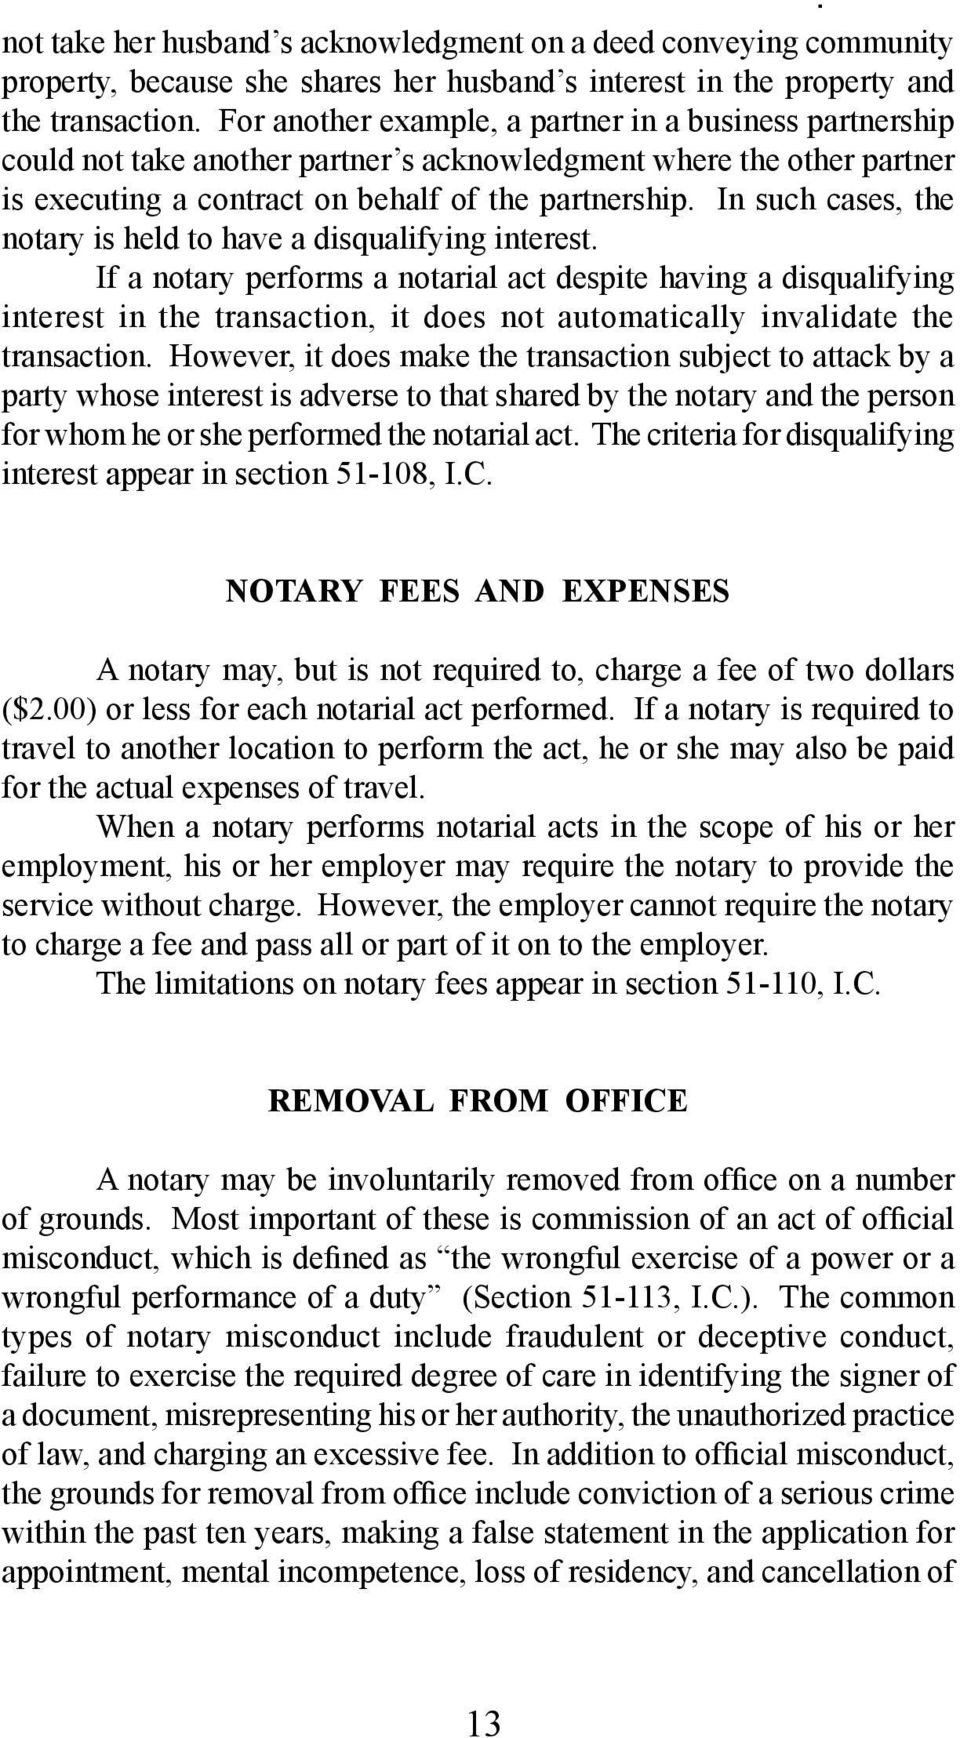 In such cases, the notary is held to have a disqualifying interest.